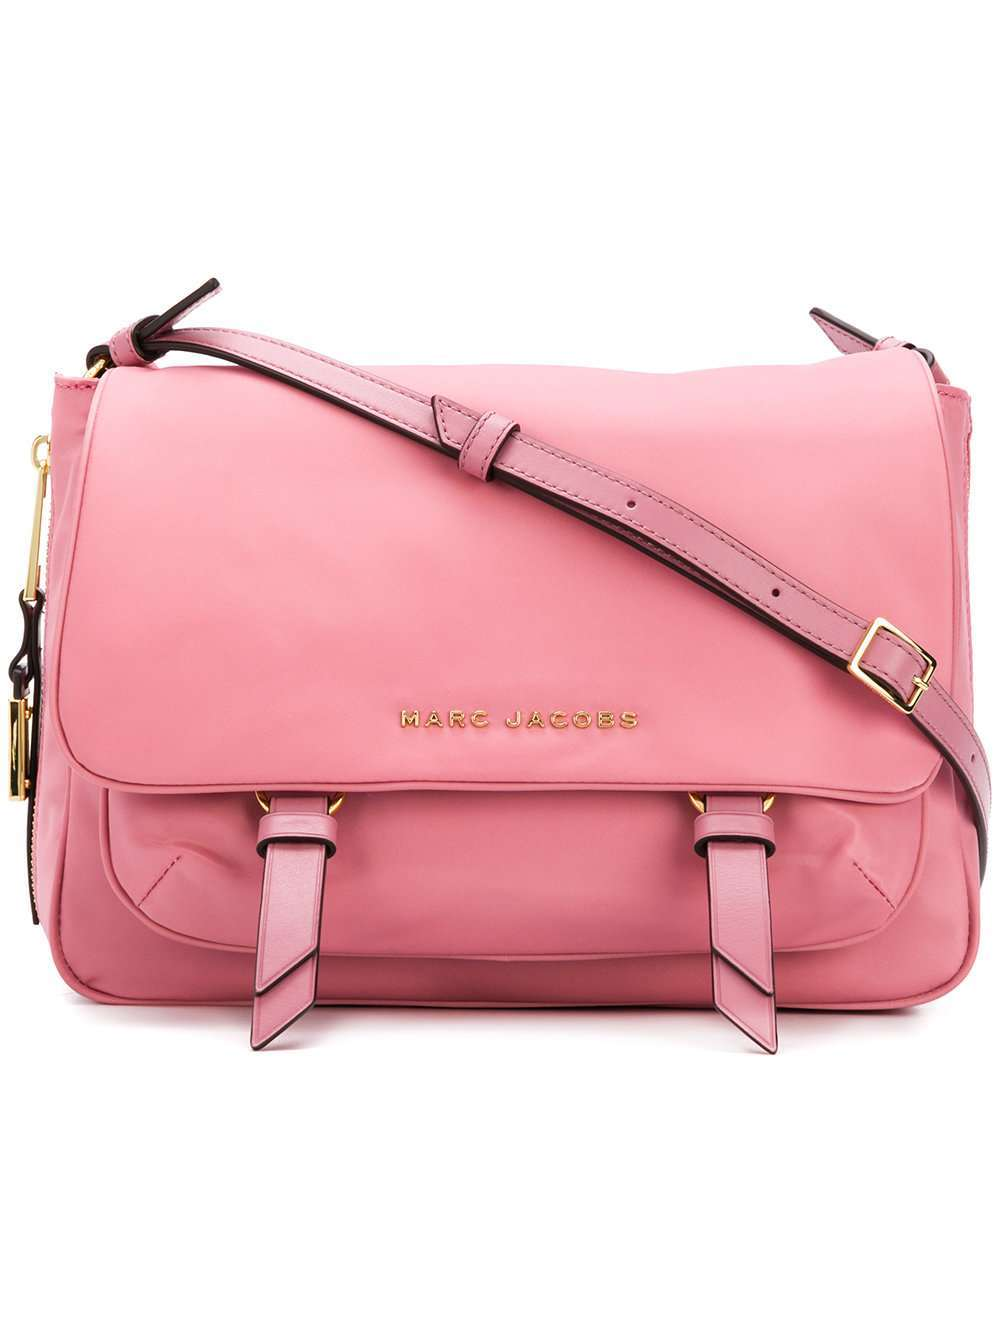 Borsa messenger Marc Jacobs